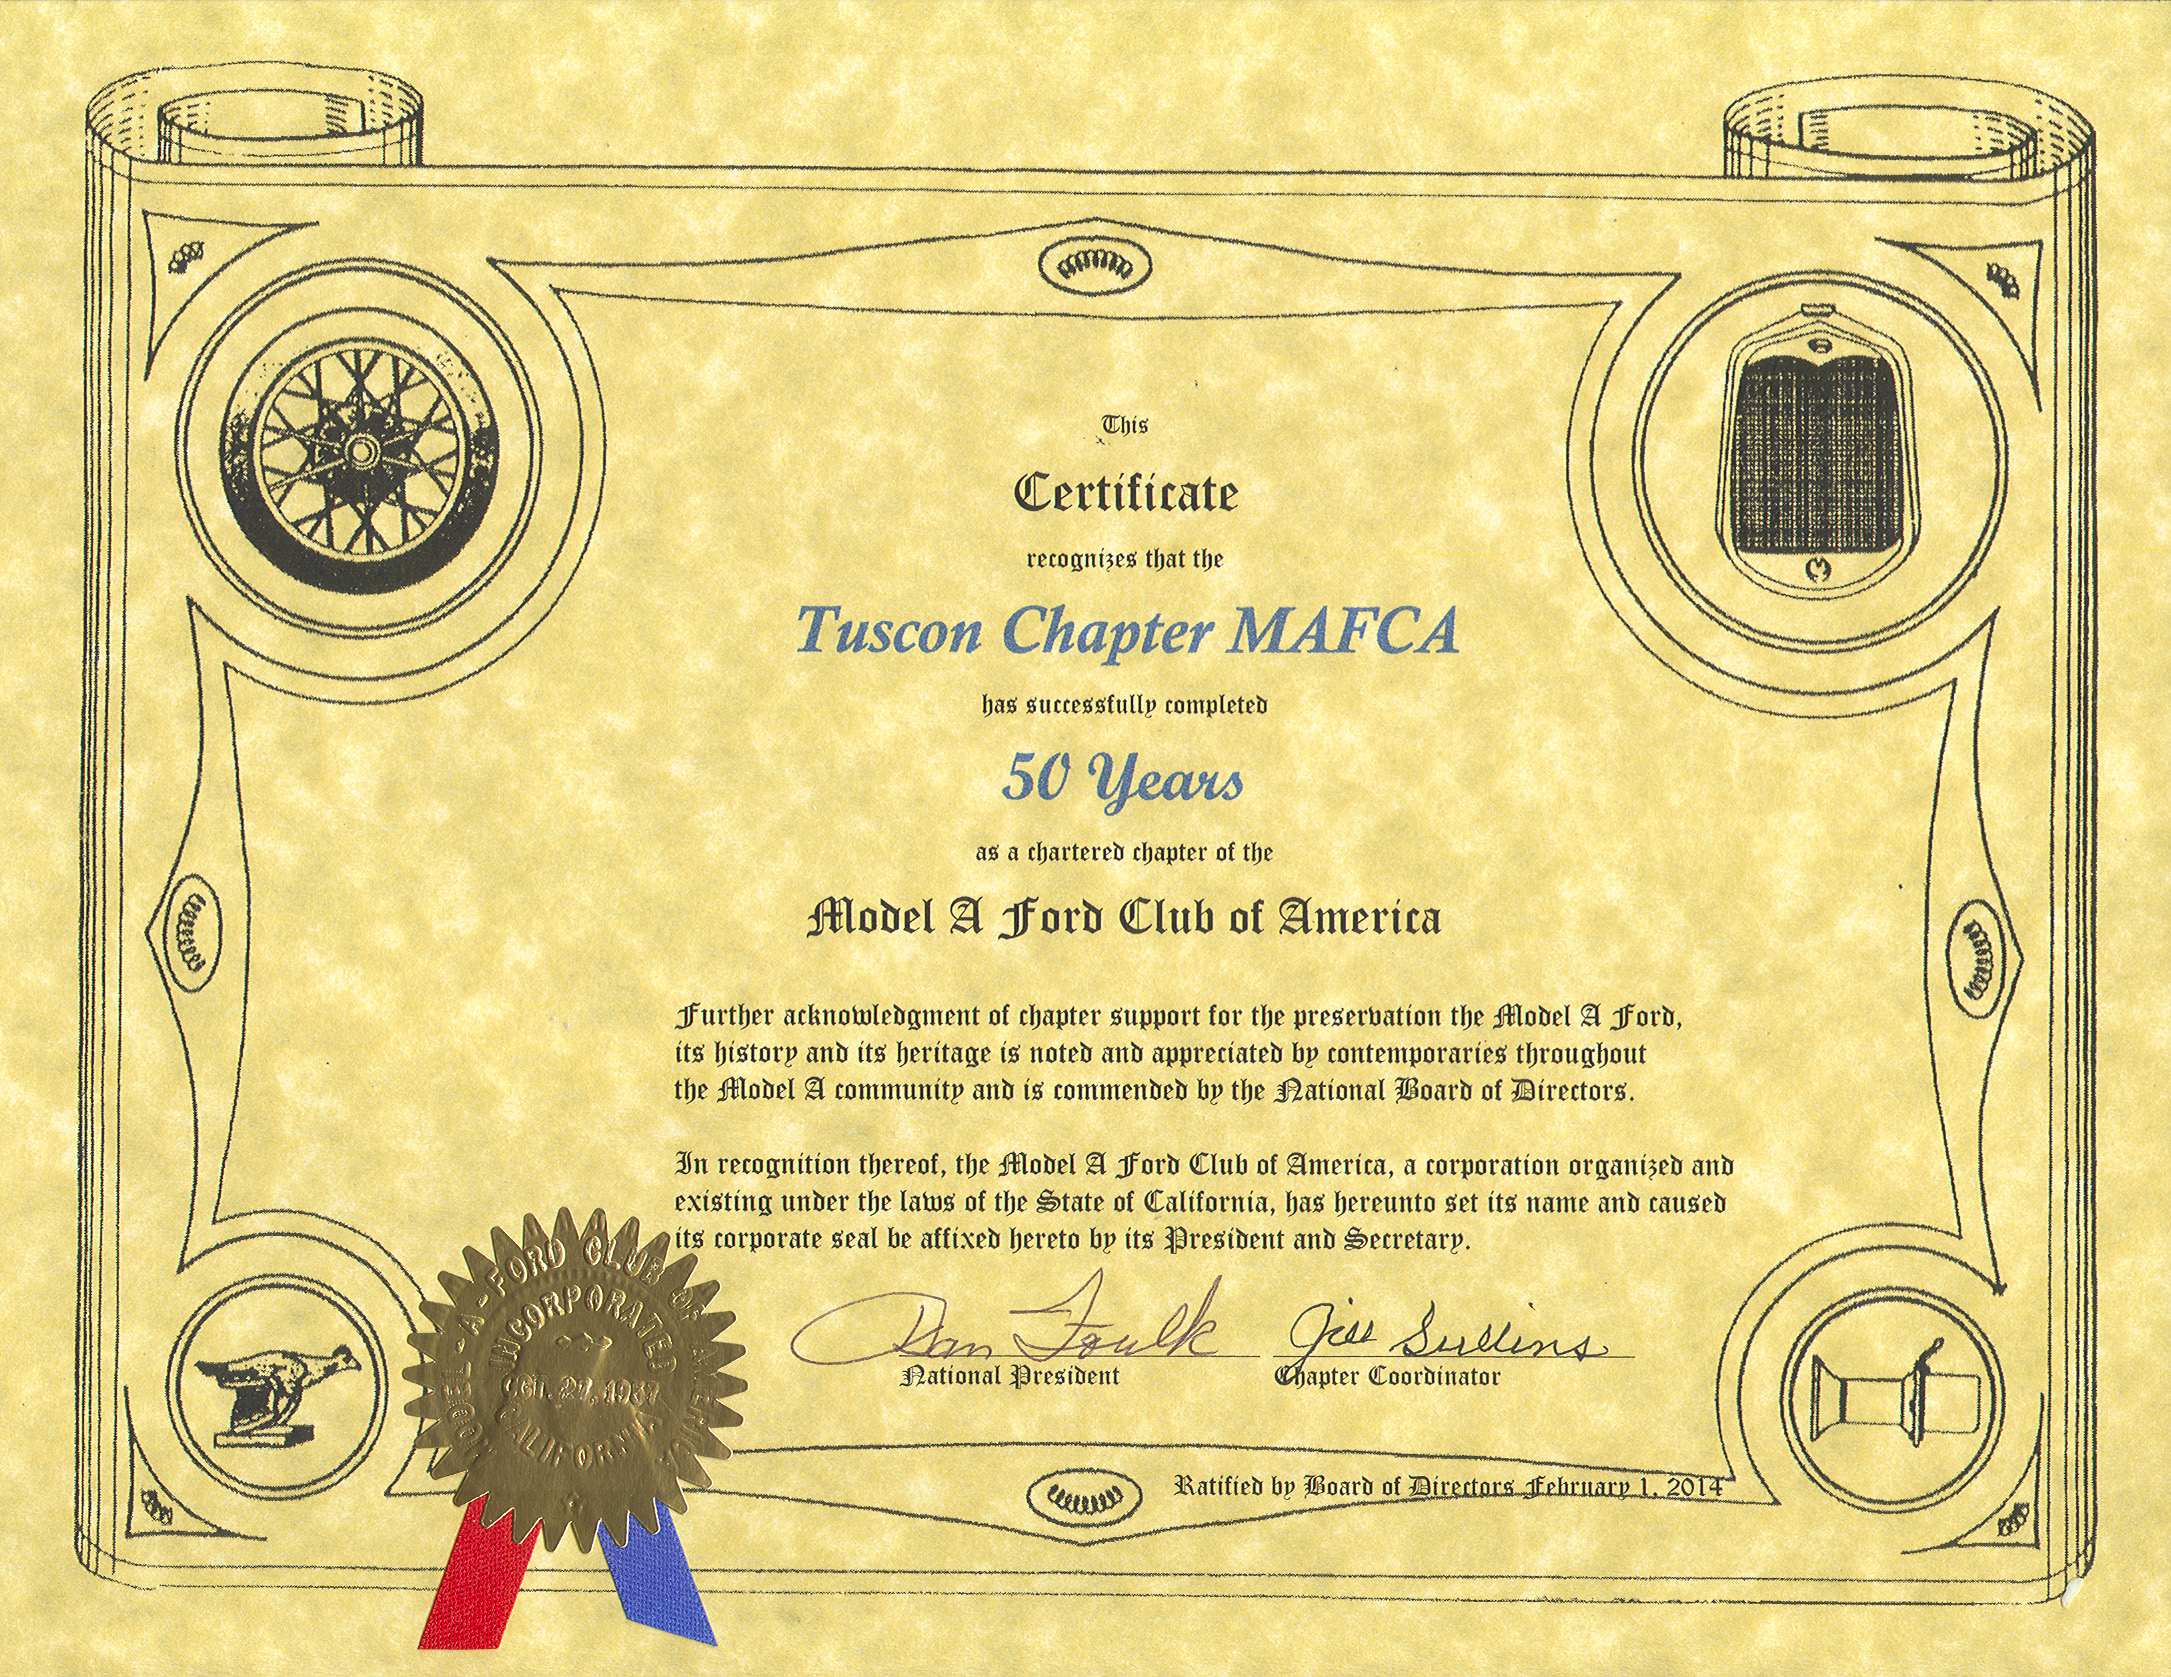 Tucson Chapter Model A Ford Club of America - 50 Year Charter